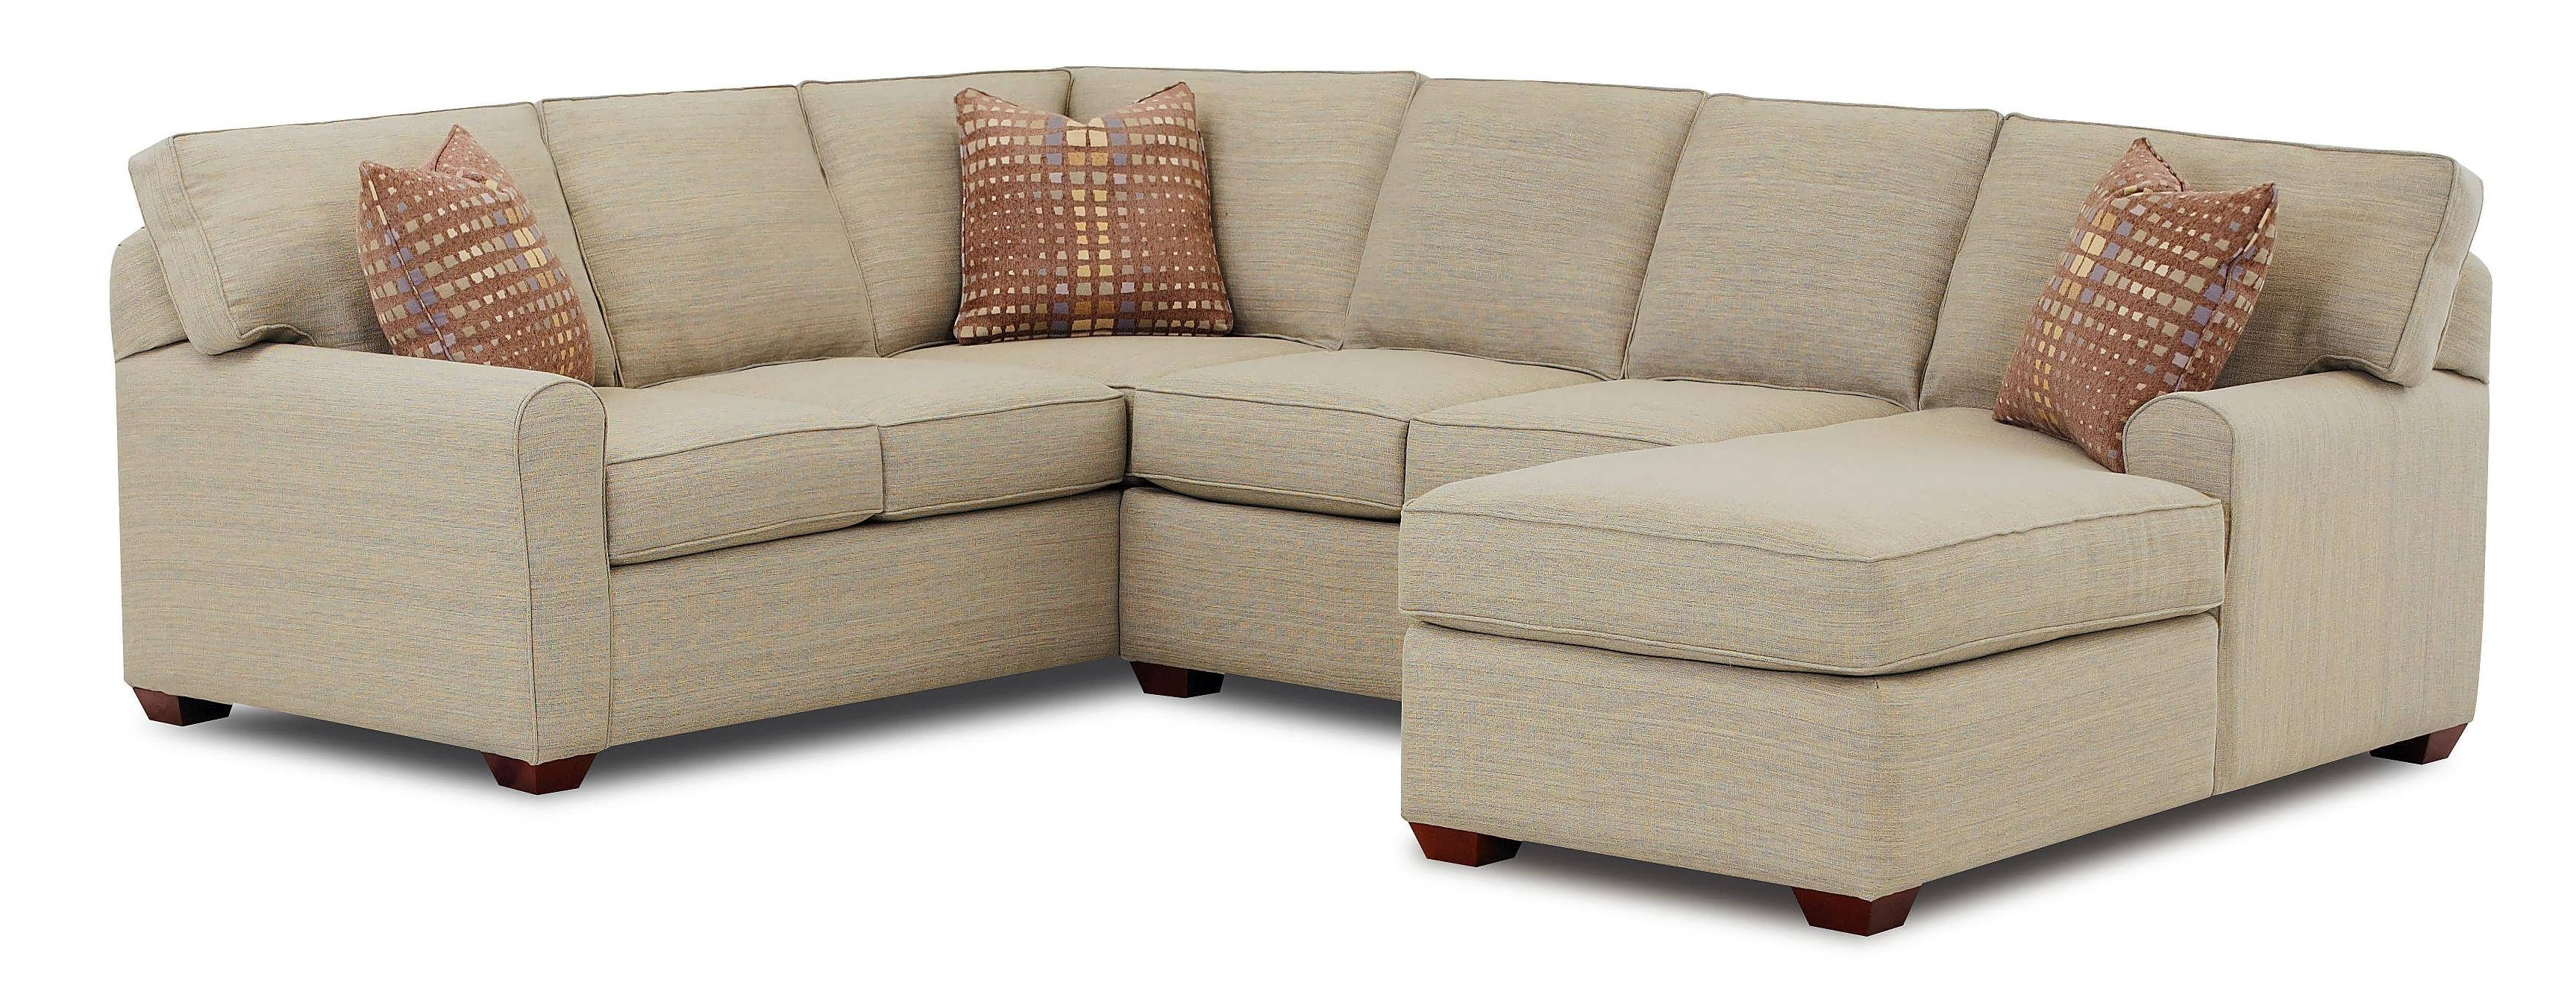 Couches With Chaise Lounge Throughout Fashionable Sofa : L Shaped Couch 3 Piece Sectional Sofa Modular Sofa Bed (View 6 of 15)